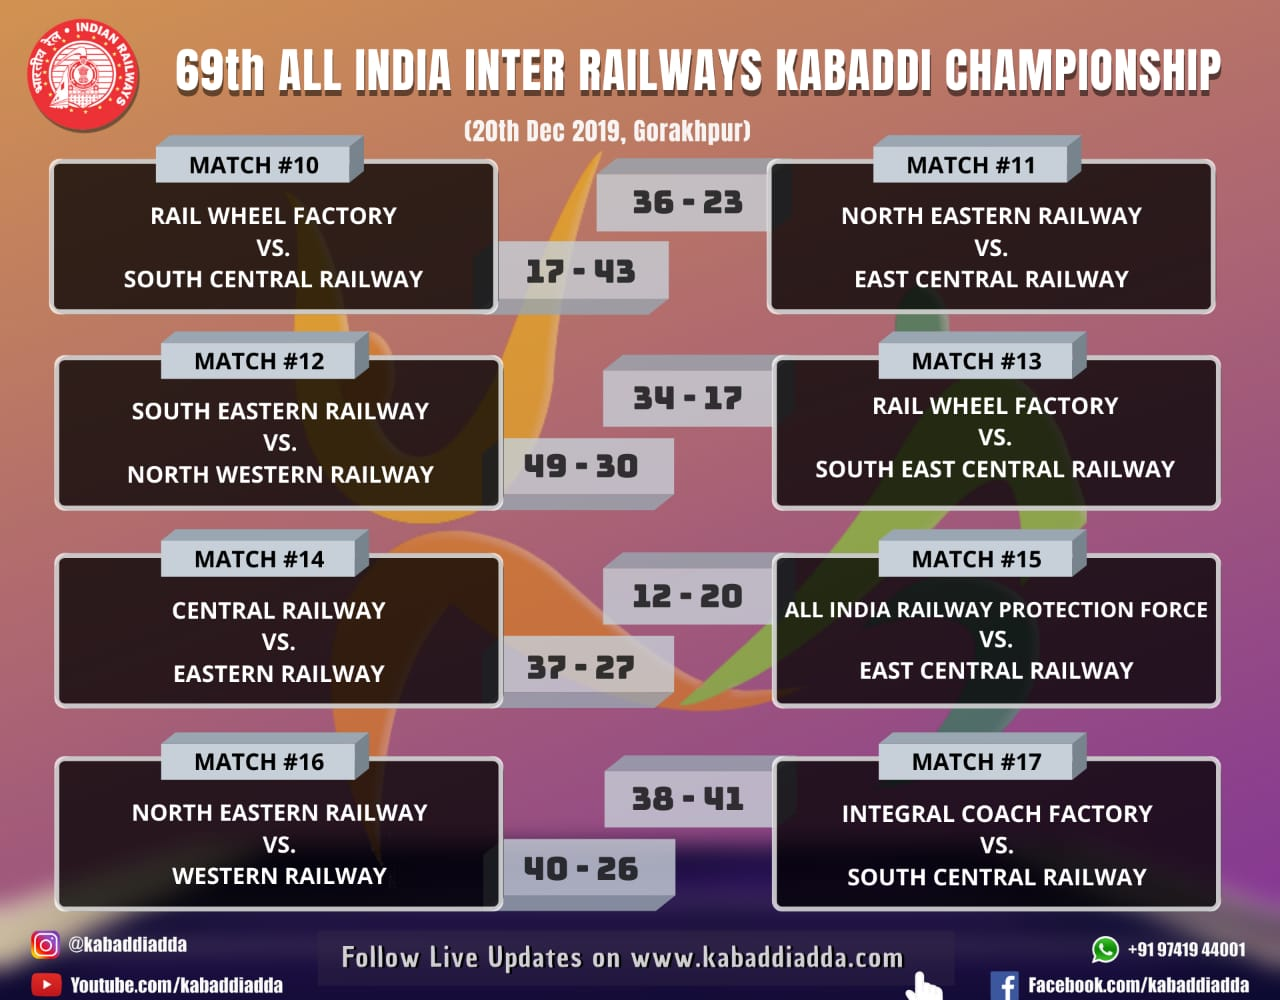 Day 2 results of 69th All India Inter Railway Tournament